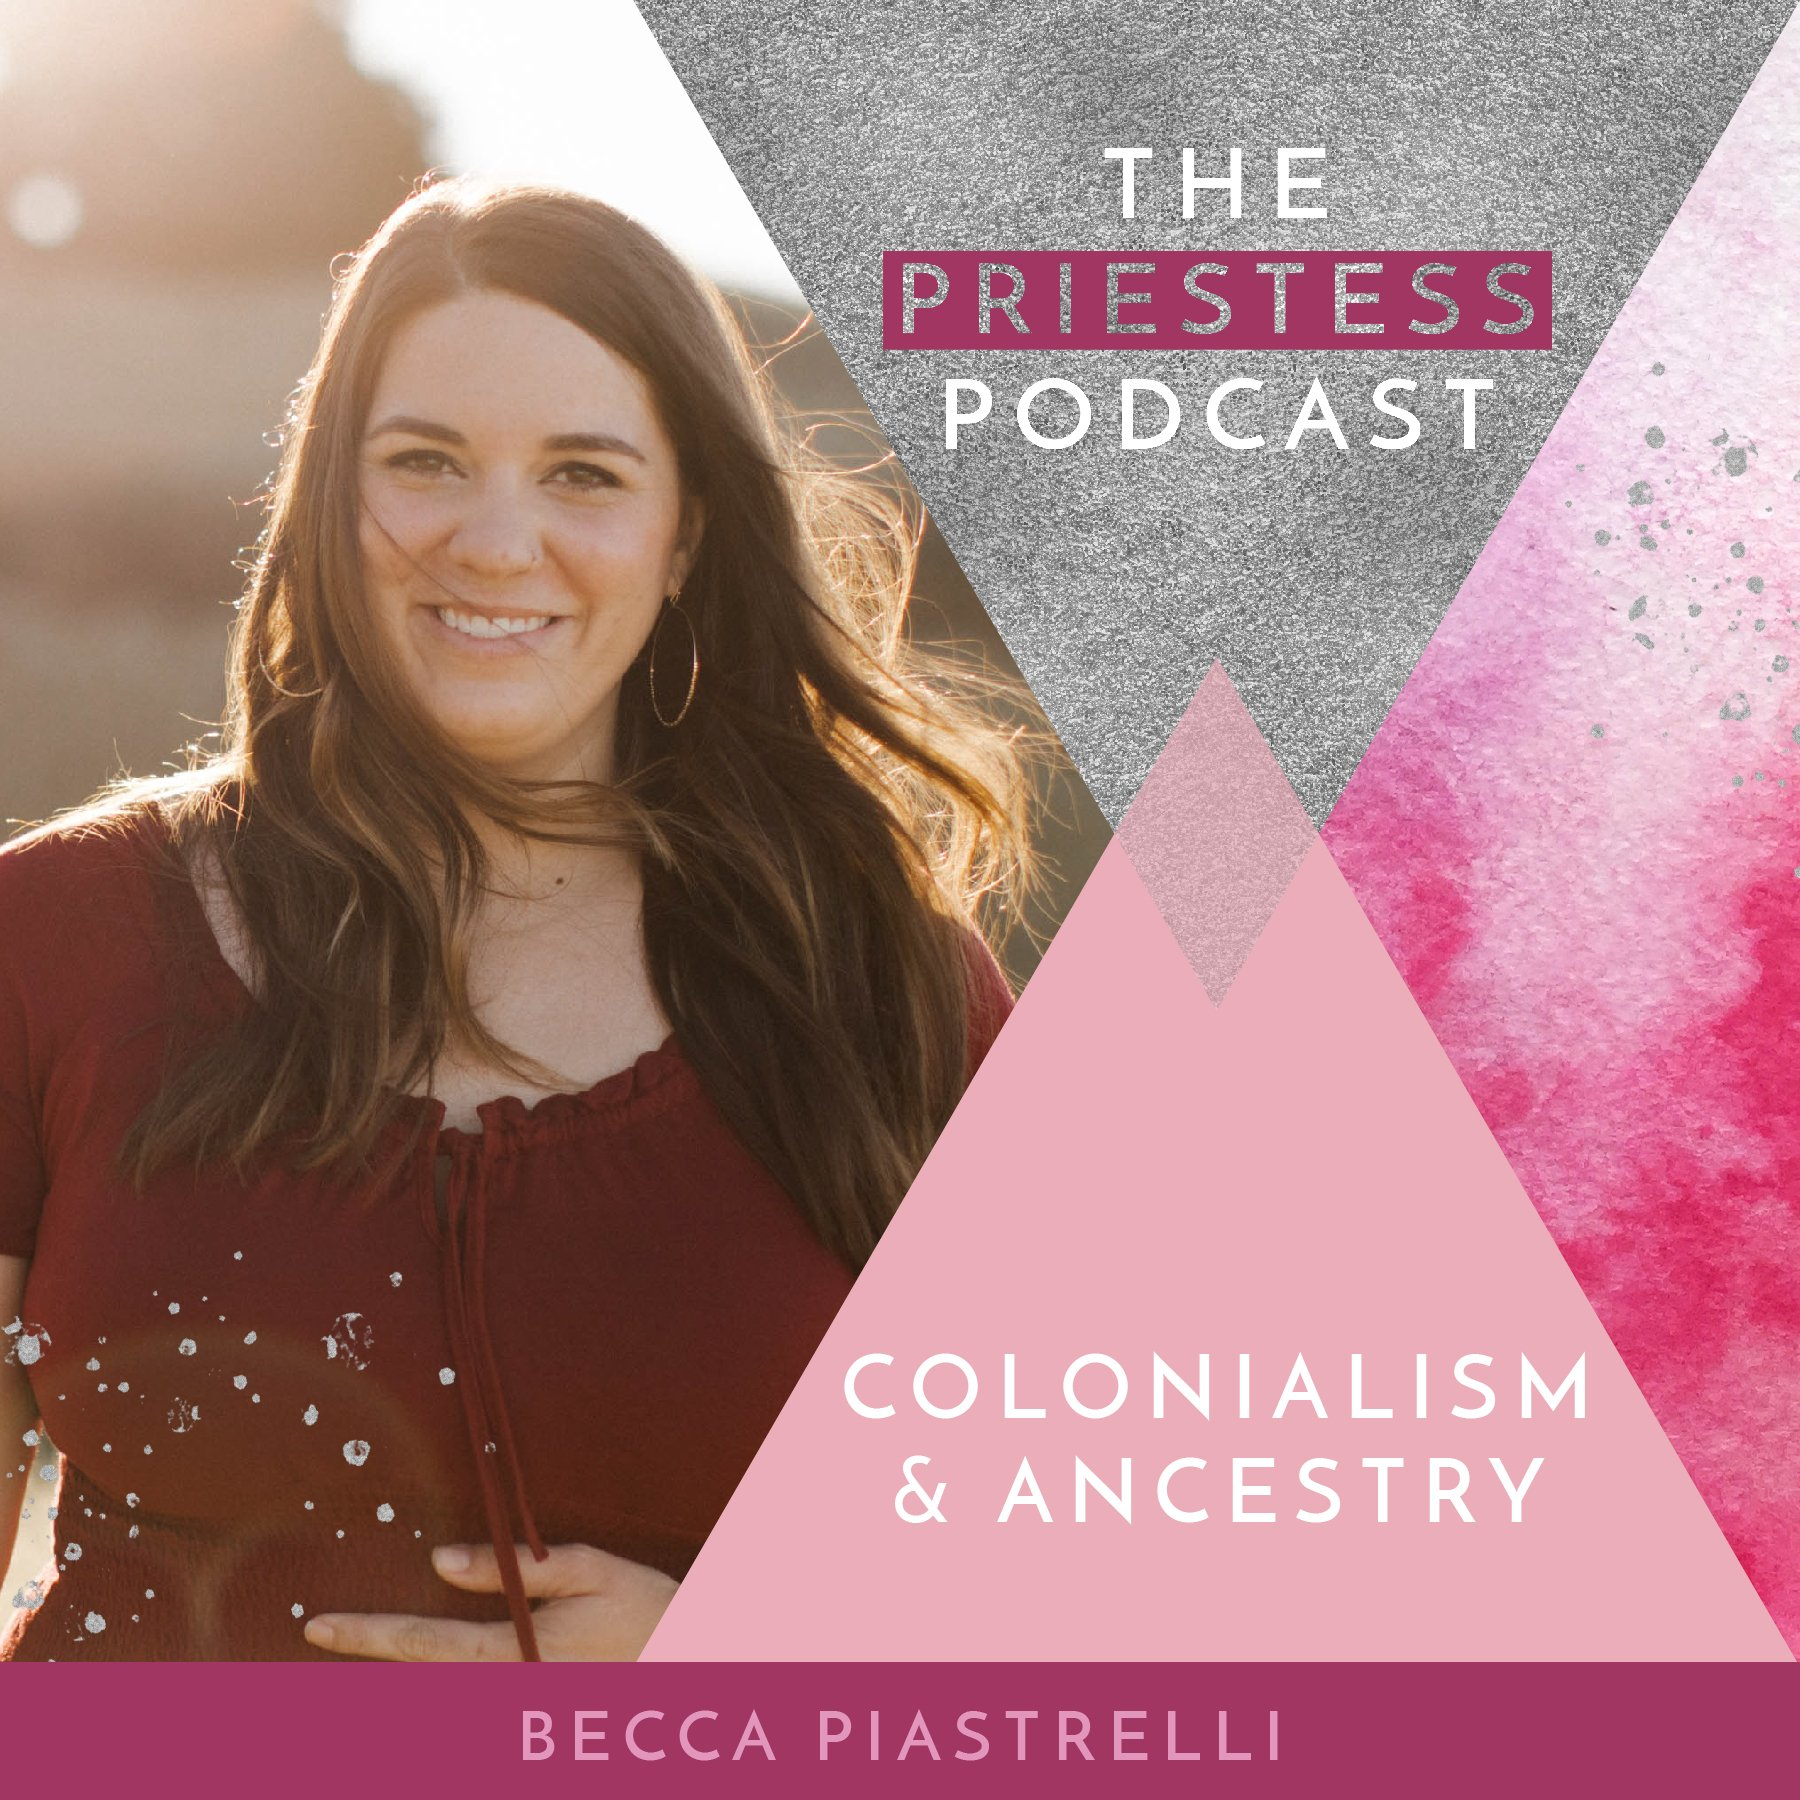 Becca Piastrelli on Colonialism and Ancestry